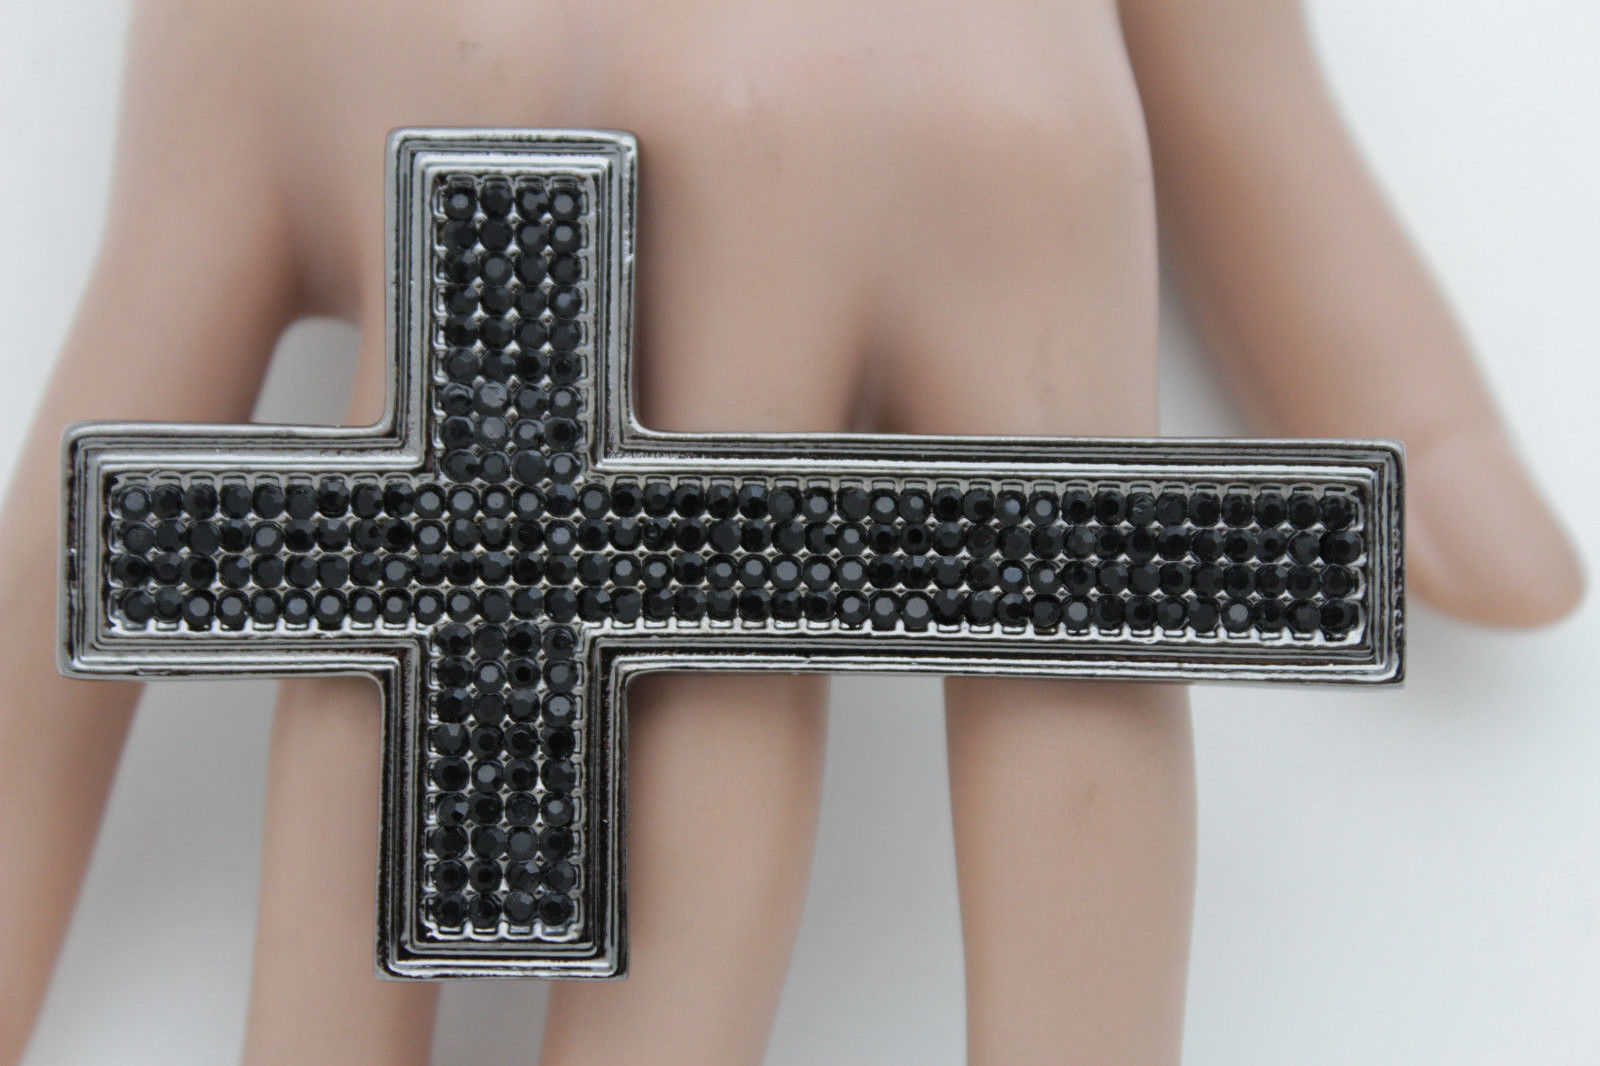 Primary image for Women Ring Fashion All 4 Fingers Metal Pewter Metal Black Rhinestones Cross Long